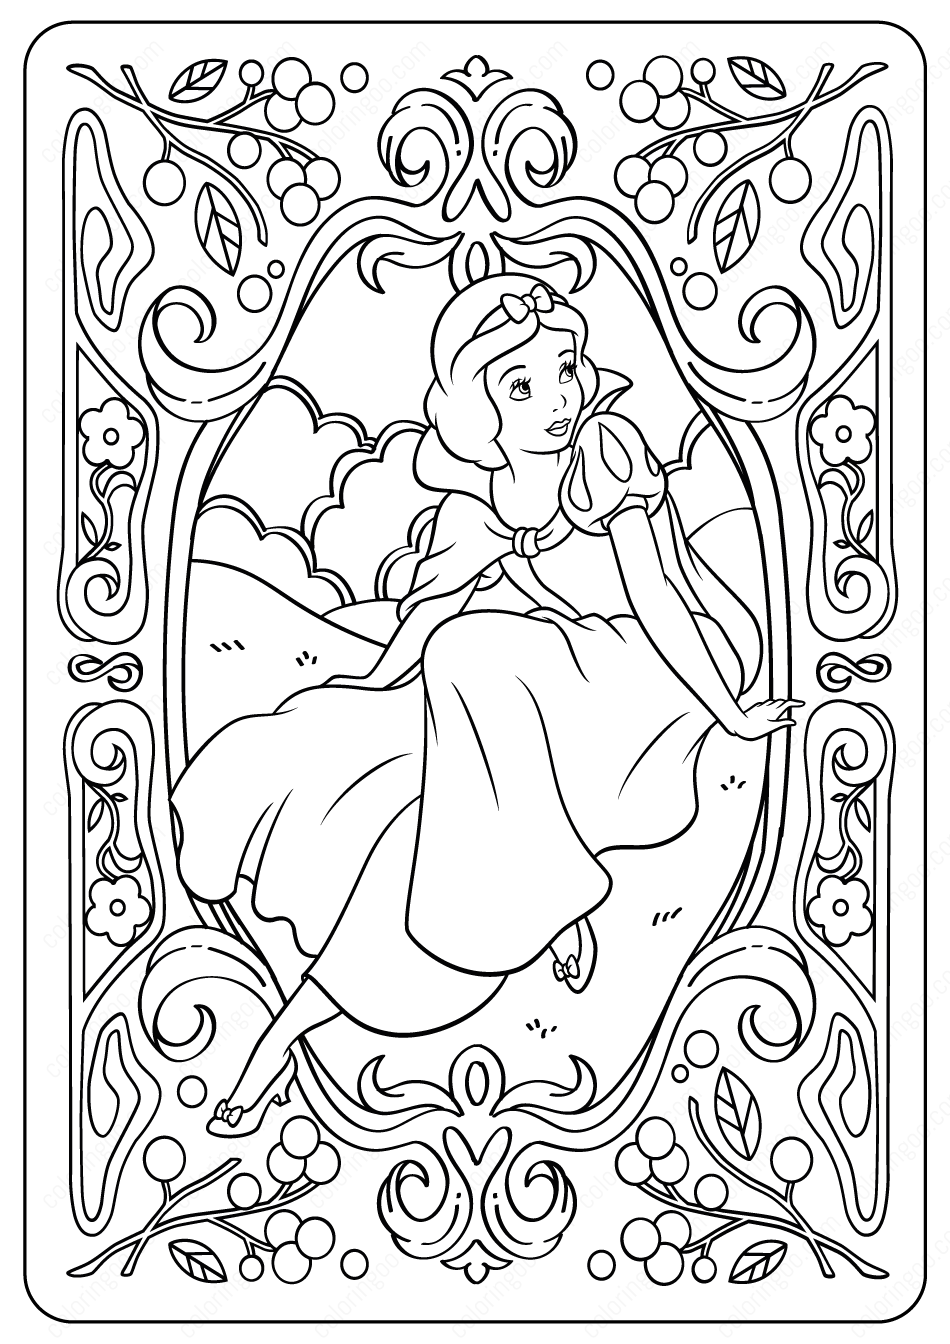 Printable Disney Snow White Pdf Coloring Pages In 2020 Princess